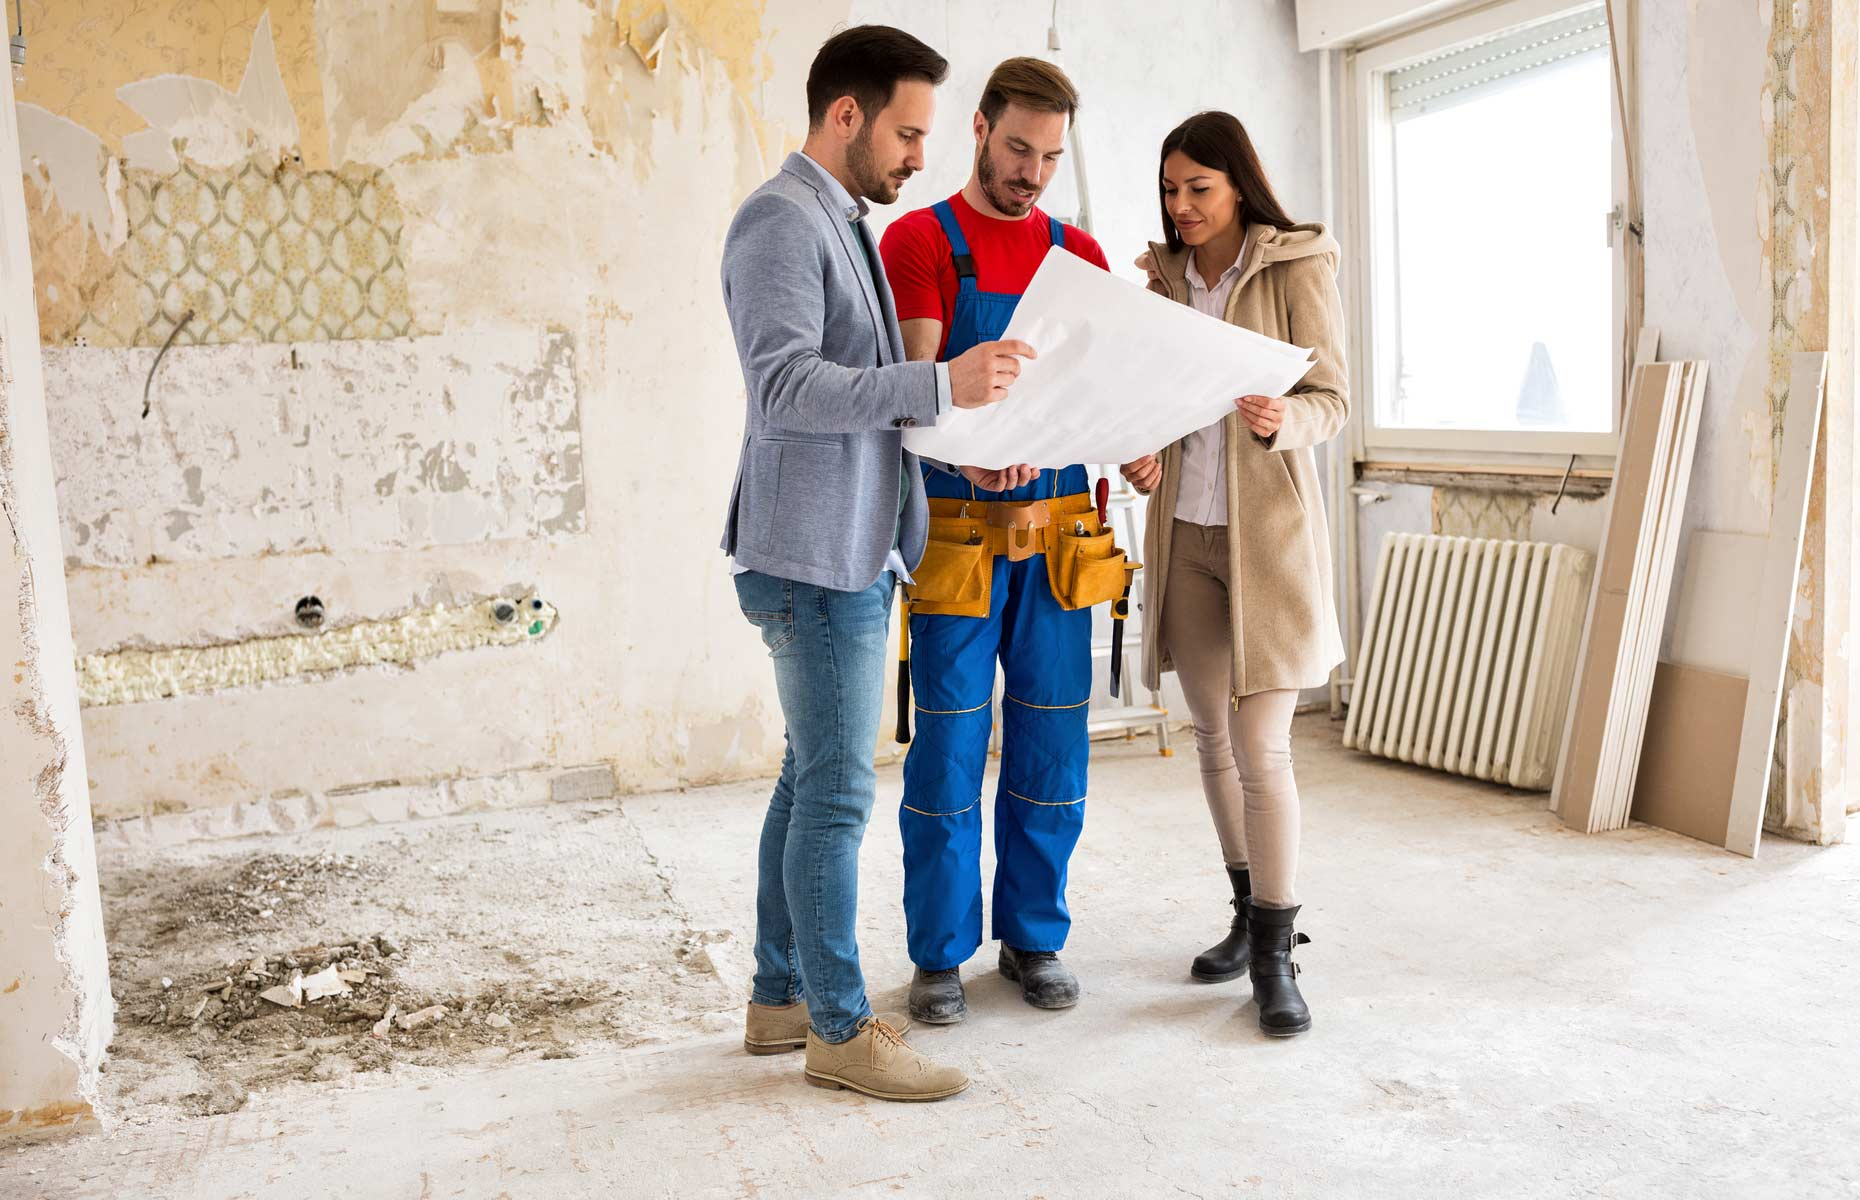 Finding a team of reliable builders is crucial in property development. Image: didesign021 / Shutterstock